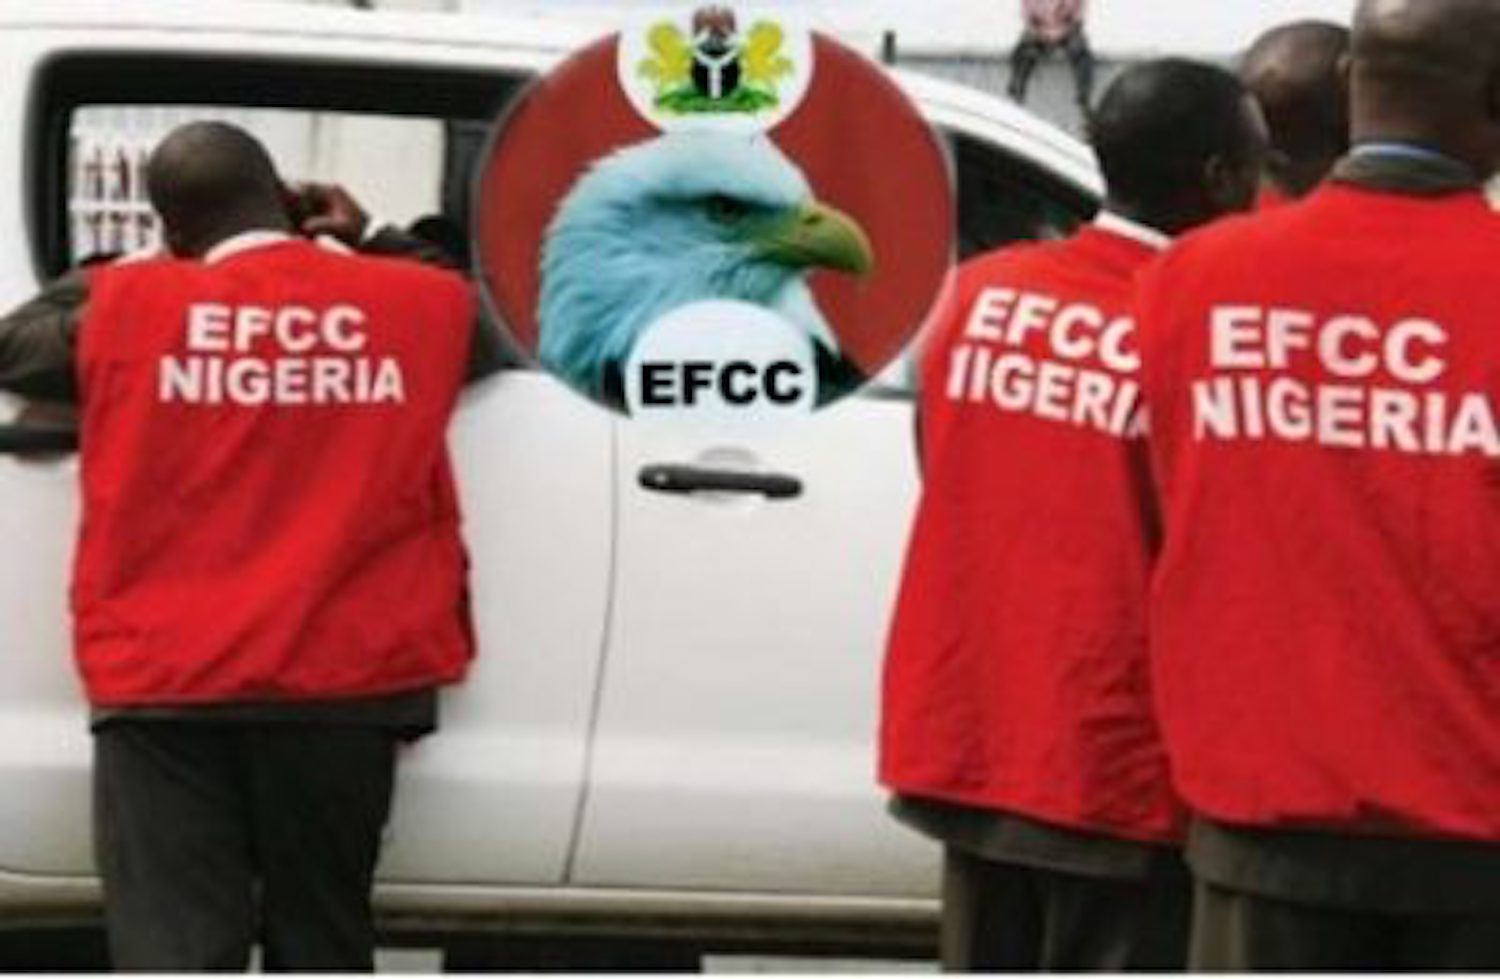 efcc-promises-to-crackdown-the-modes-of-internet-fraudsters